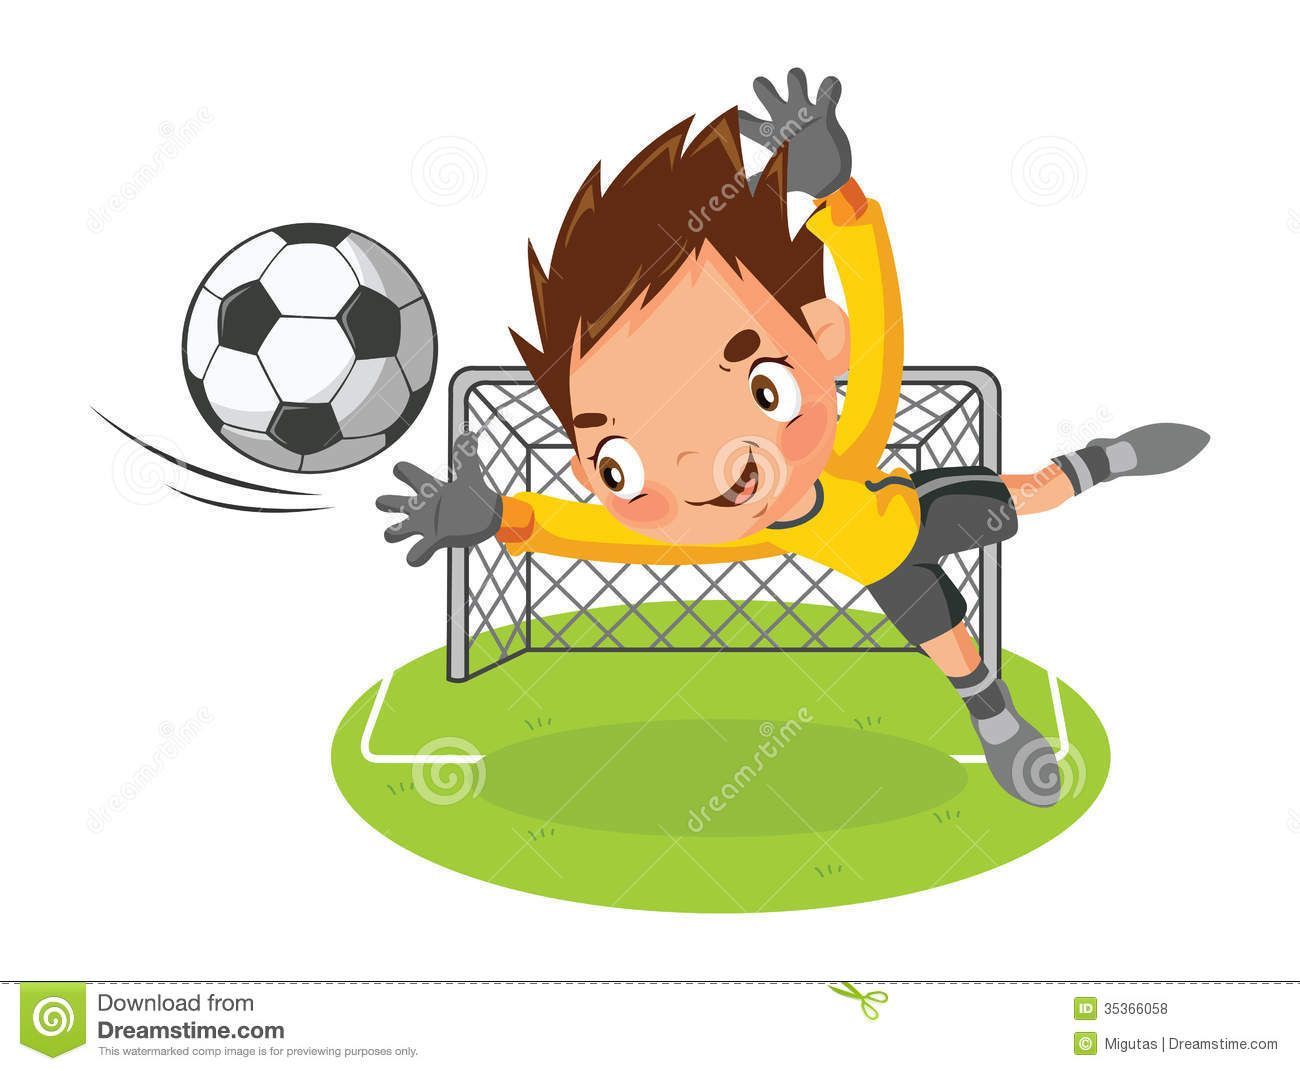 Soccer Ball Soccer Clipart Image Football Player Kicking A Football Or Clip Art Soccer Ball Sharpie Tie Dye